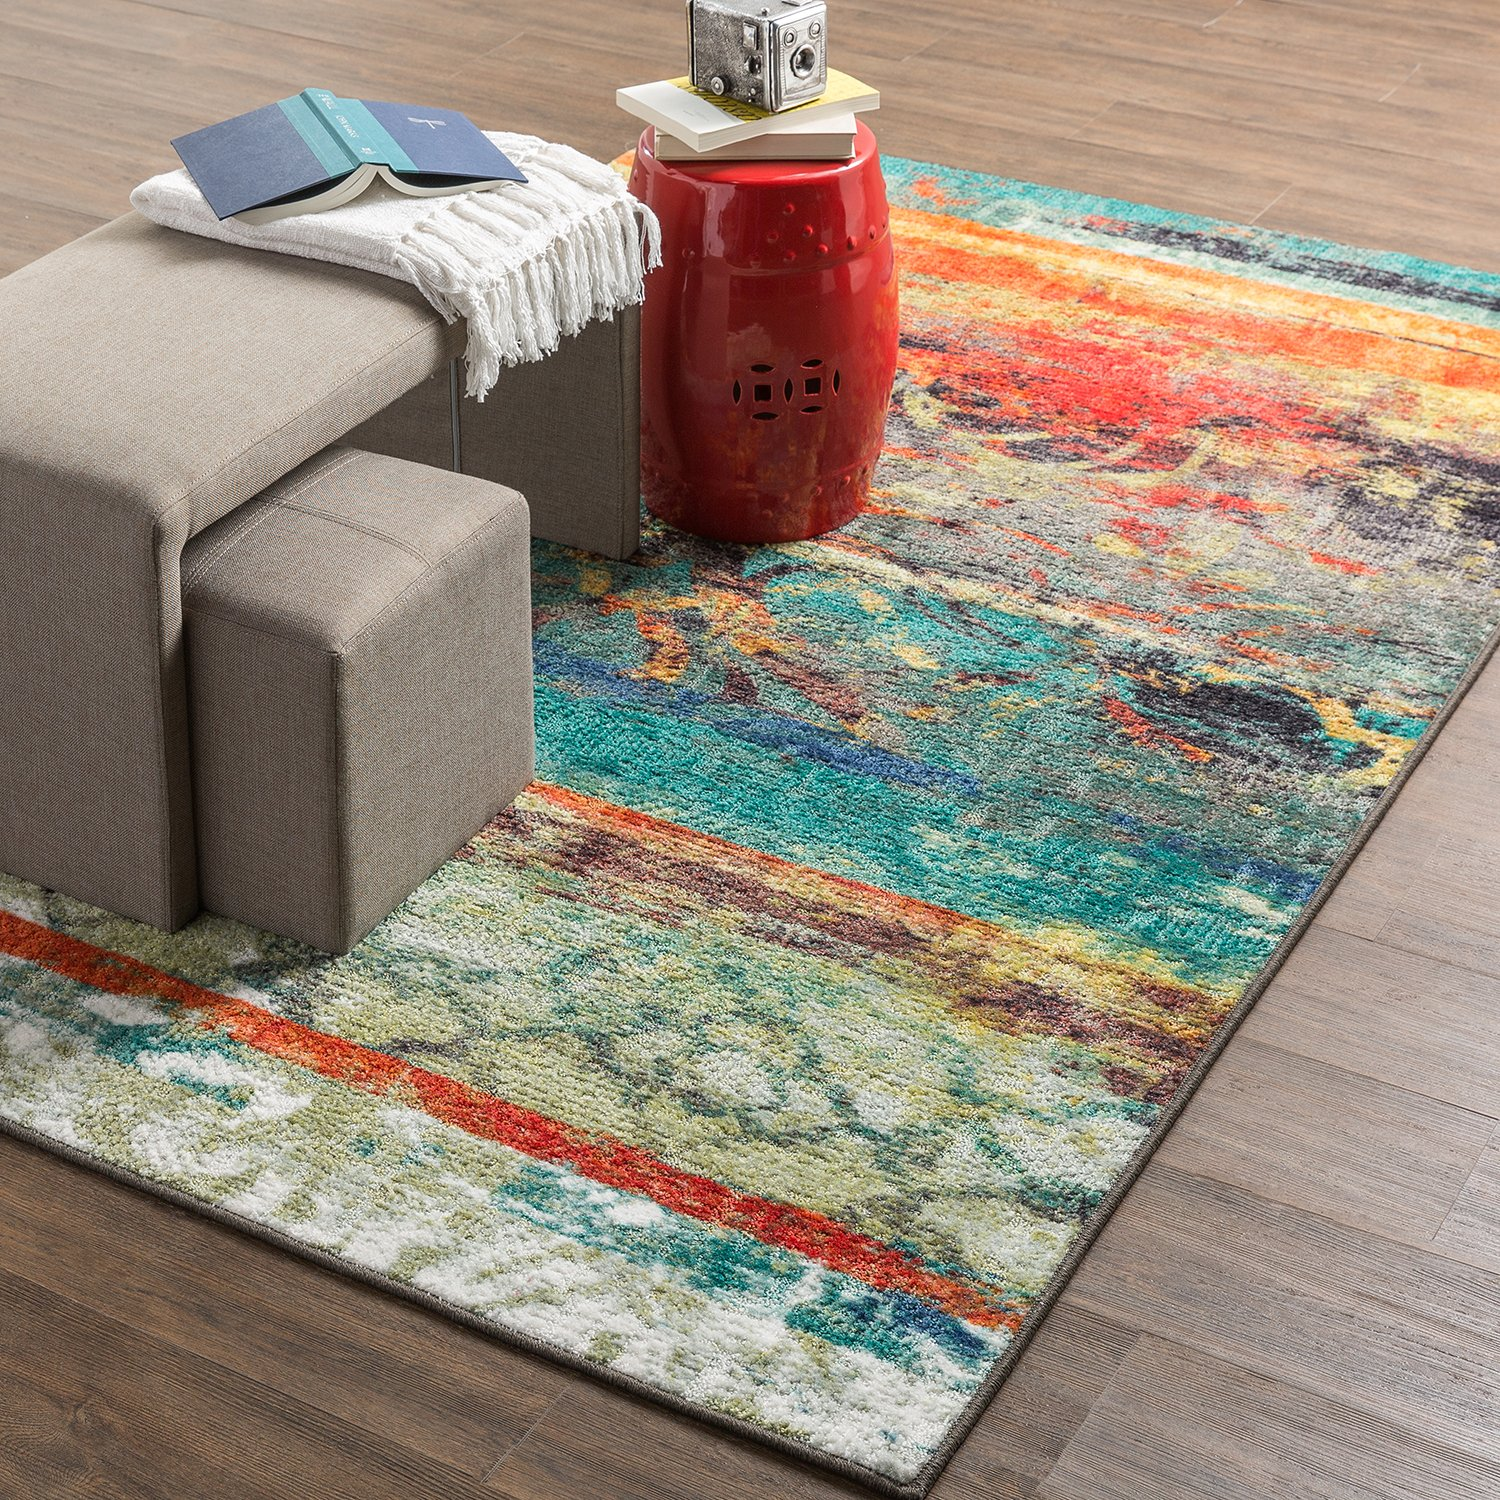 Amazon.com: Mohawk Home Strata Eroded Distressed Abstract Printed Area Rug,  7u00276x10u0027, Multicolor: Kitchen U0026 Dining